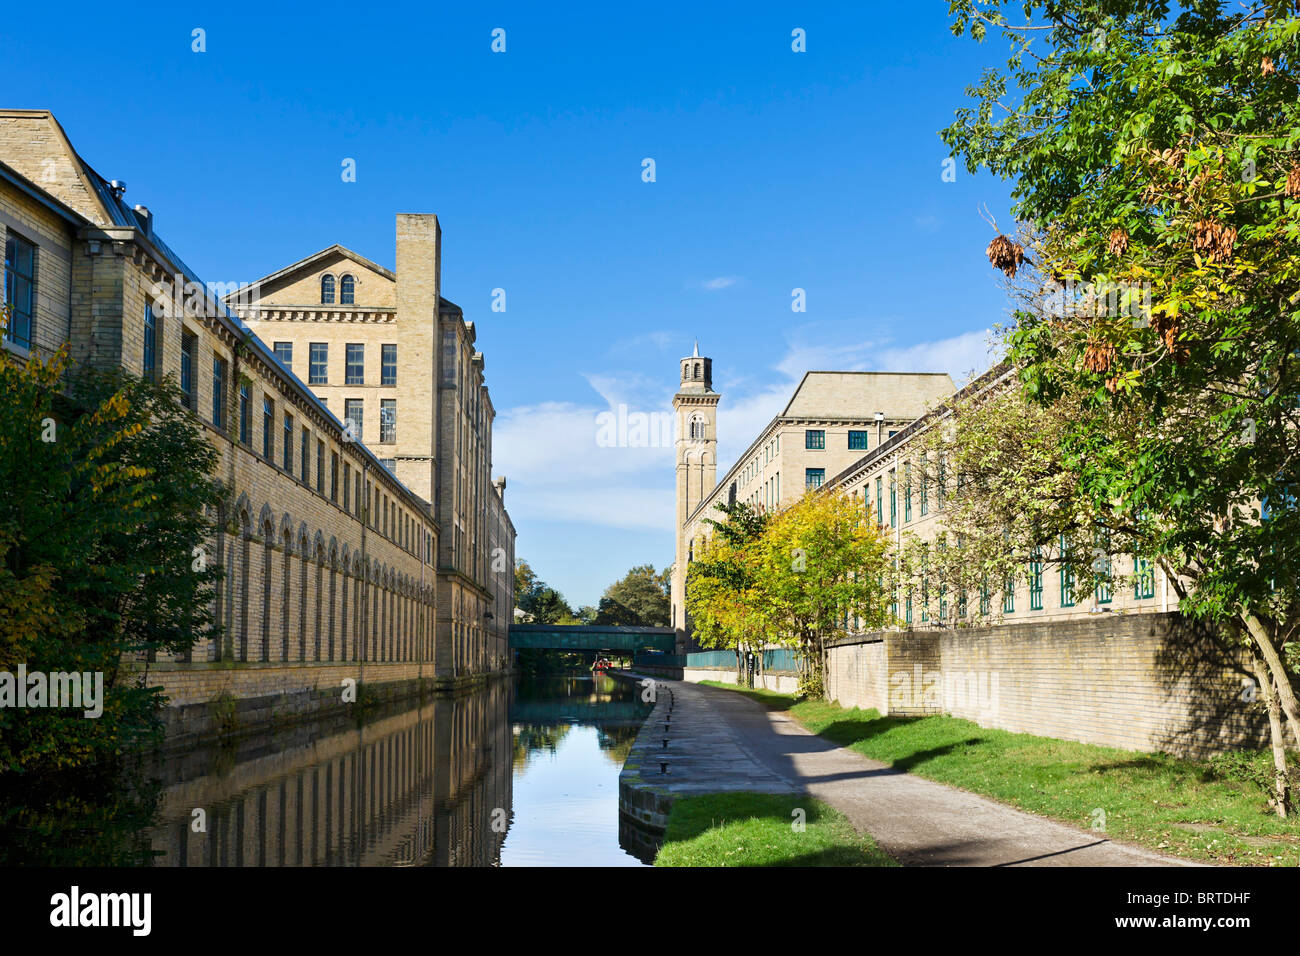 Salts Mill on the Leeds and Liverpool Canal, Saltaire, near Bradford, West Yorkshire, England, UK - Stock Image